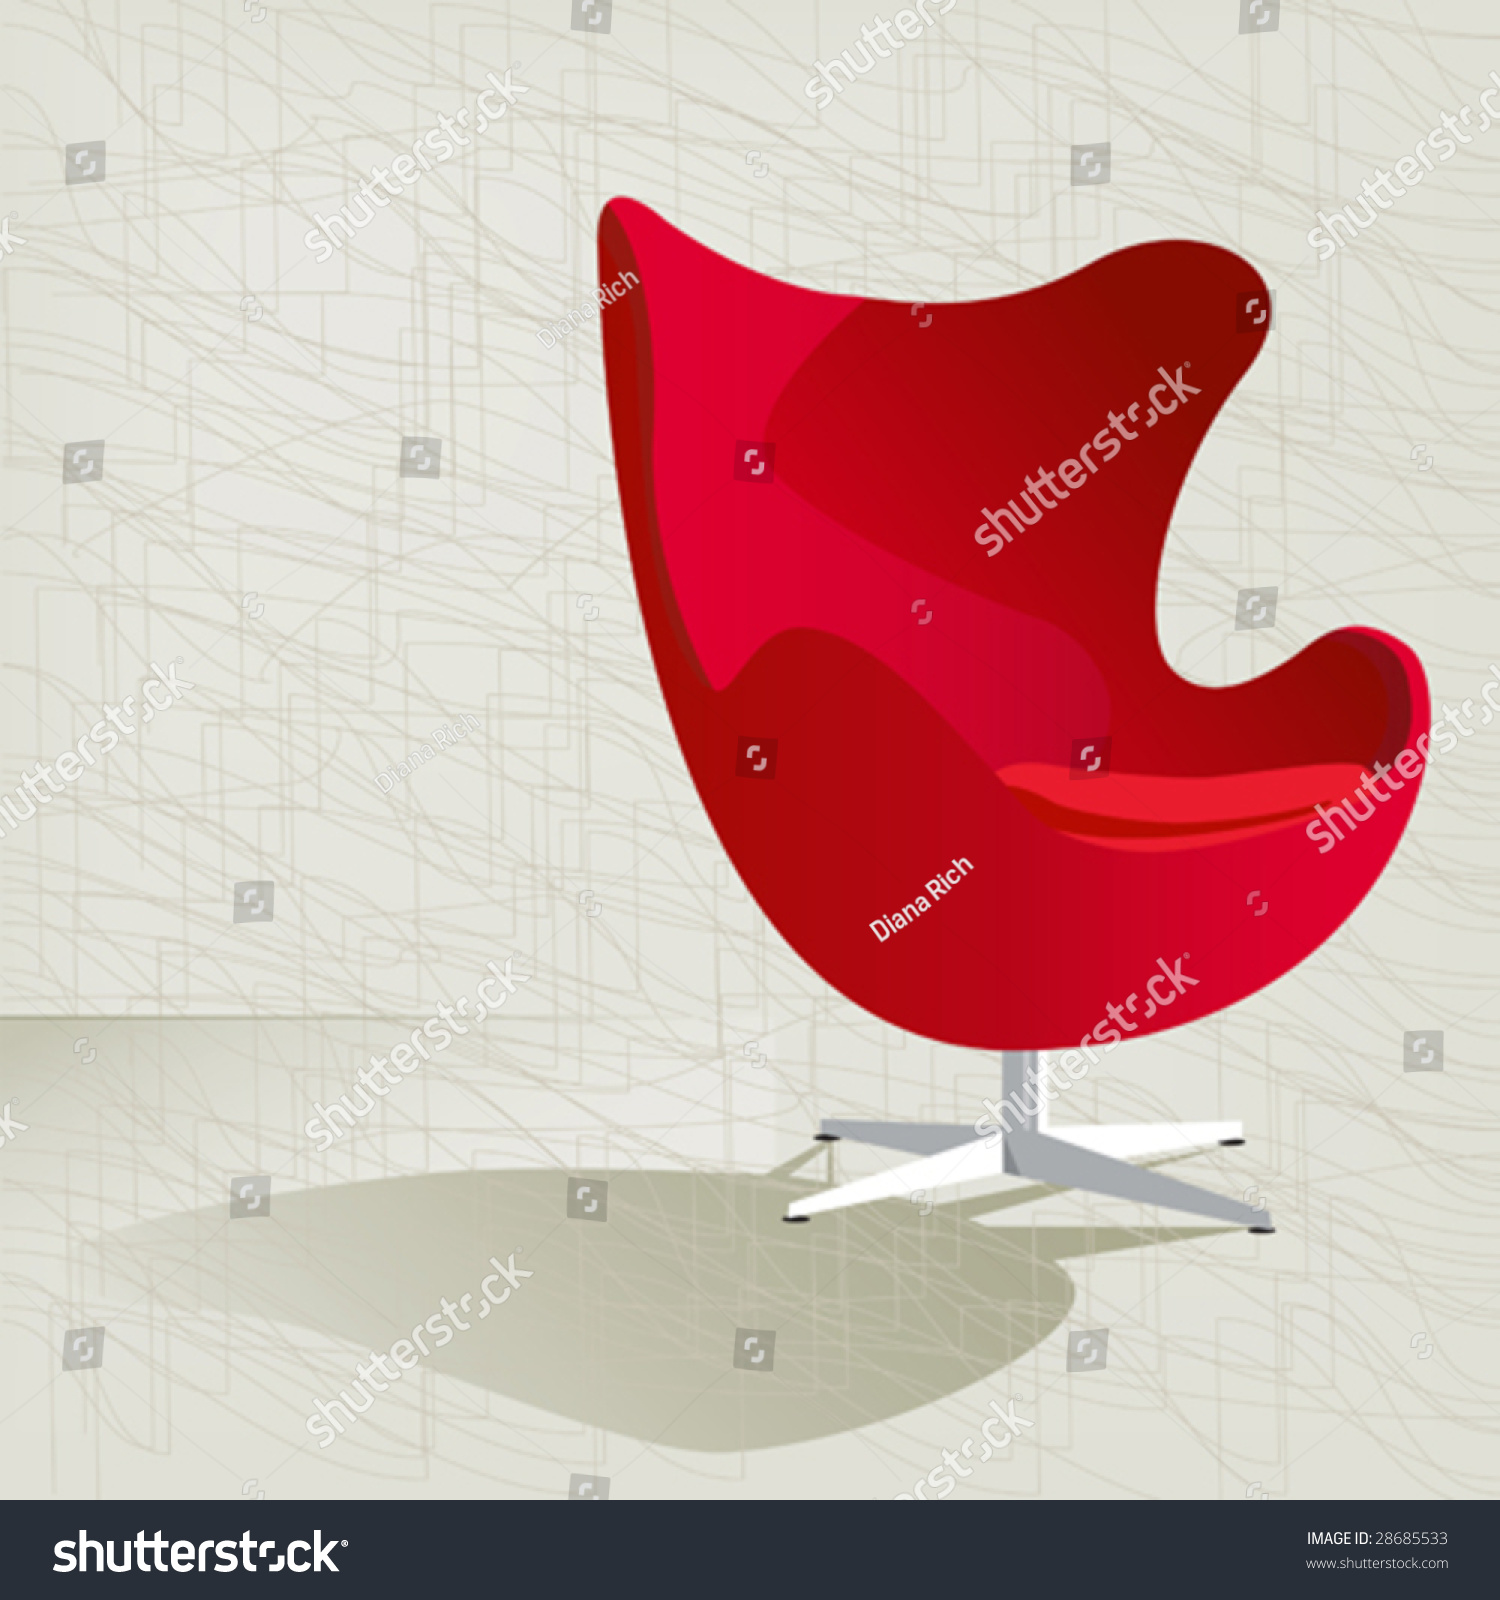 swanky retro red midcentury modern chair with a subtle modern background texture easy